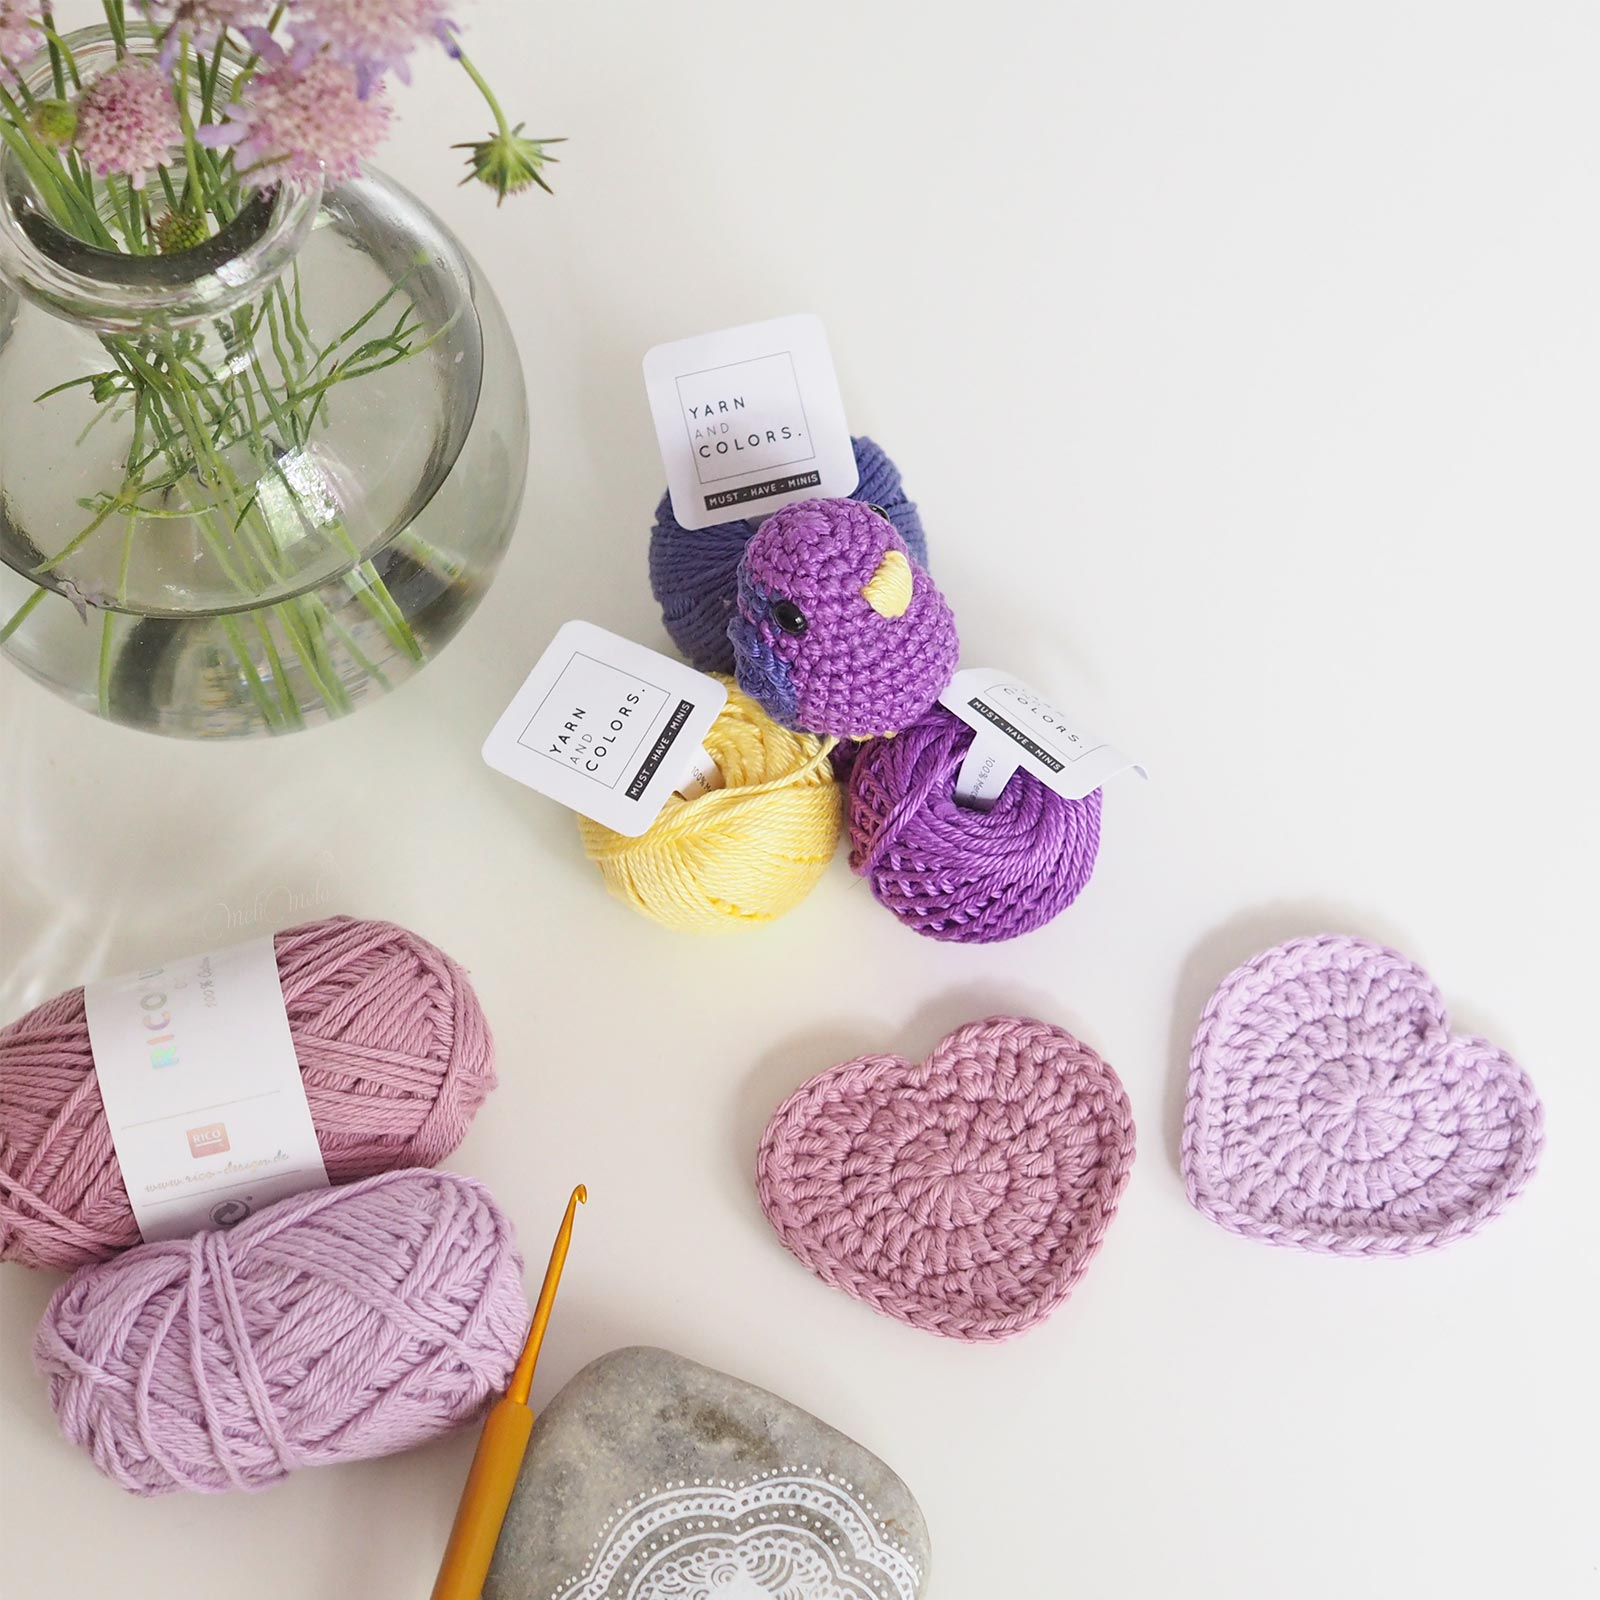 oiseau coeur crochet ricorumi must have minis yarnandcolors thalicreations laboutiquedemelimelo